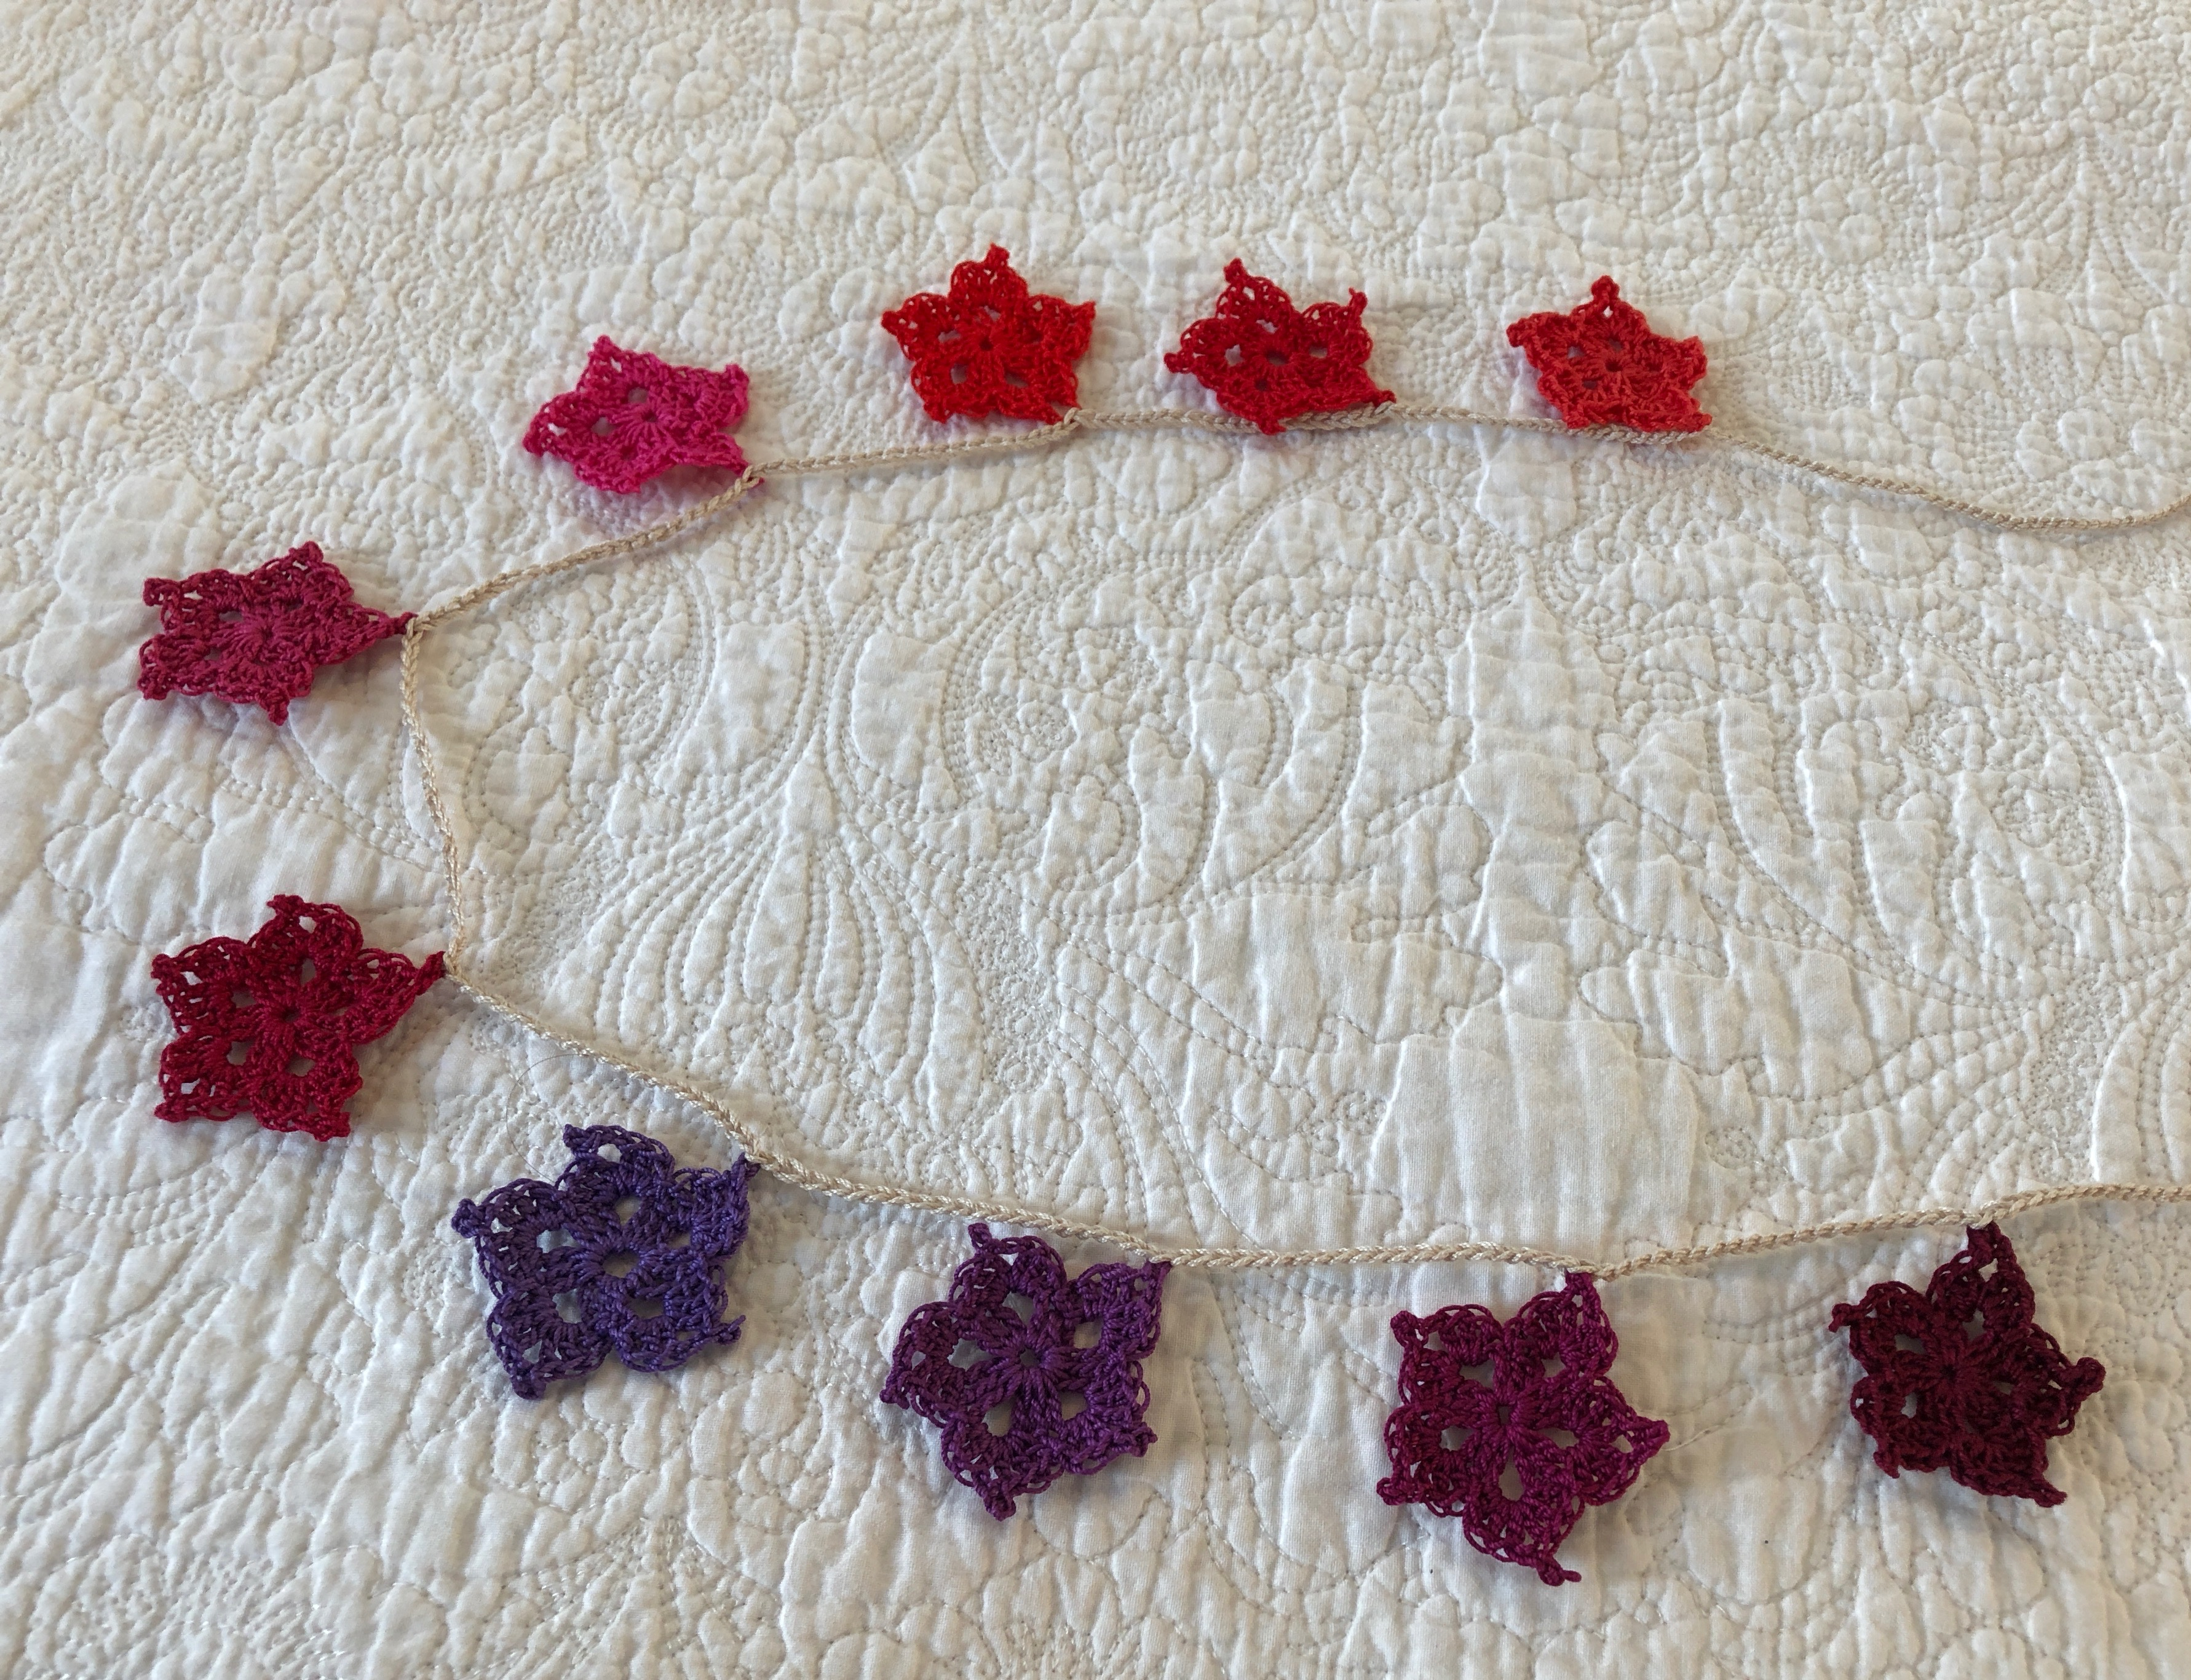 Hand made, crocheted, vintage style, cotton star garland in a gradient of red to purple shades.